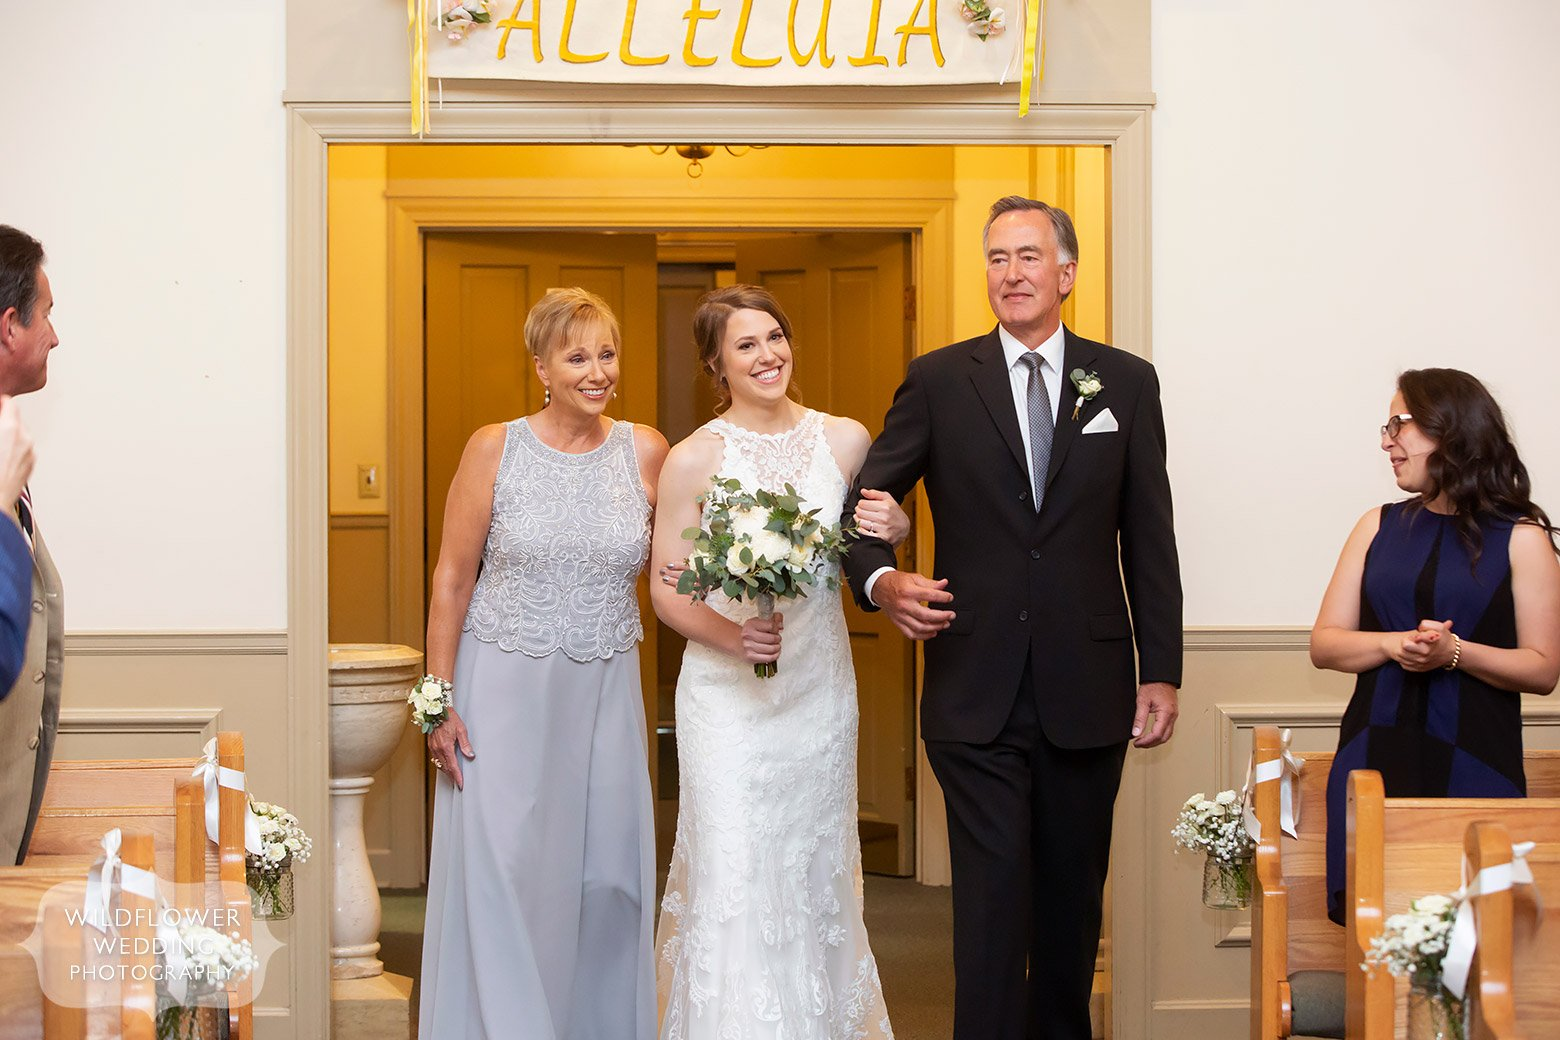 Bride enters ceremony with her parents in Boonville, MO.